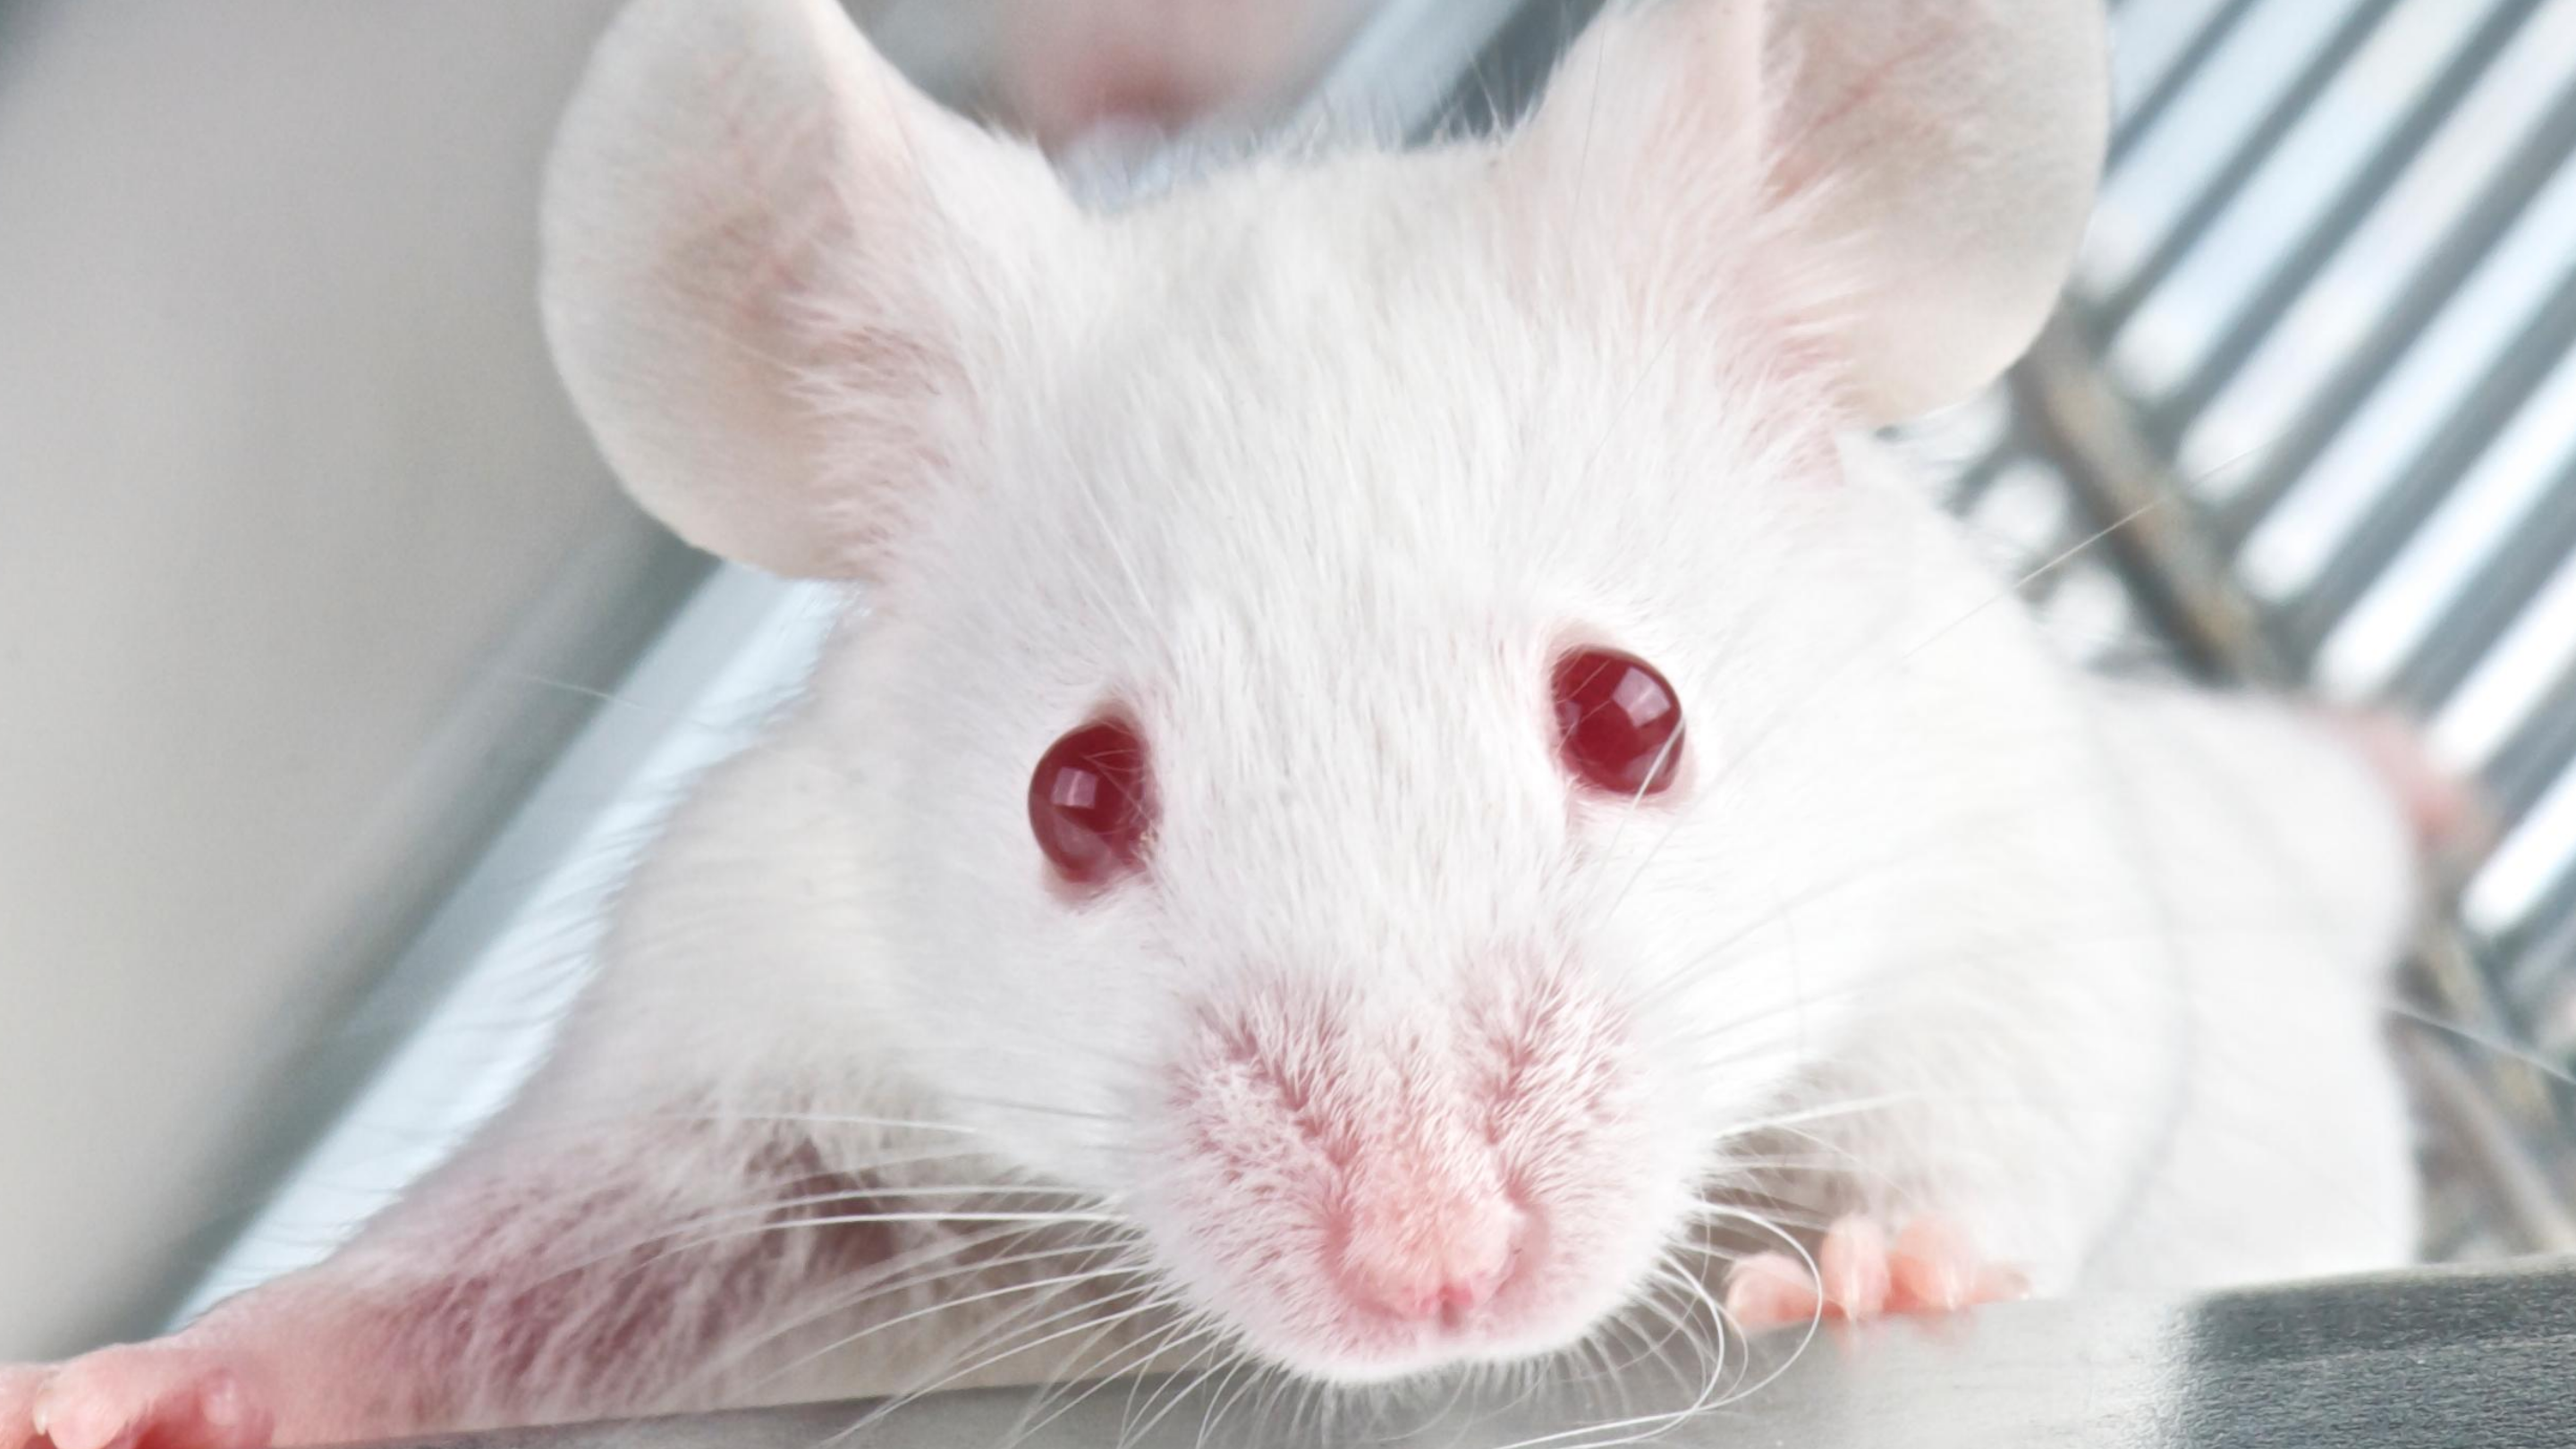 A small white mouse with red eyes peers up from his cage